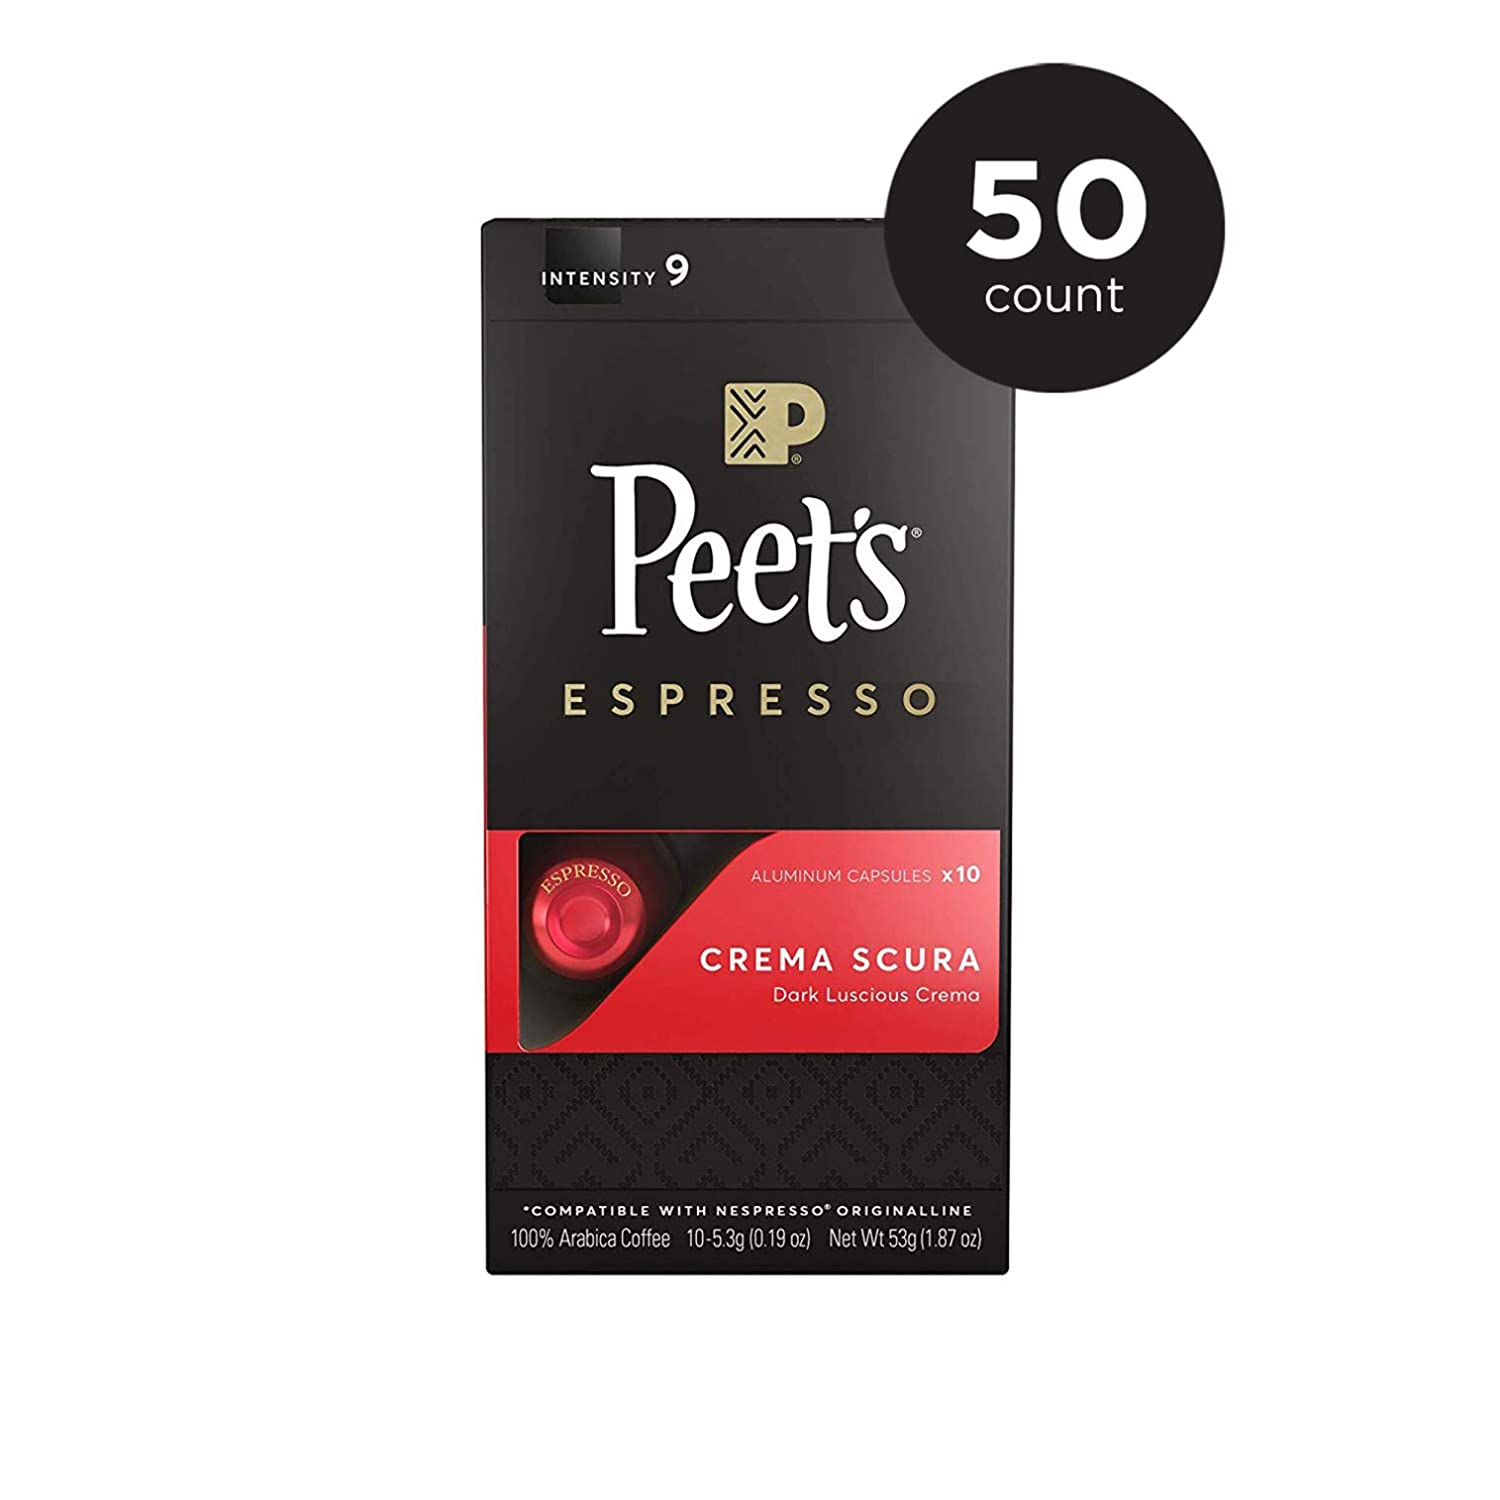 Peet's Coffee Espresso Capsules Crema Scura, Intensity 9, 50 Count Single Cup Coffee Pods Compatible with Nespresso Original Brewers